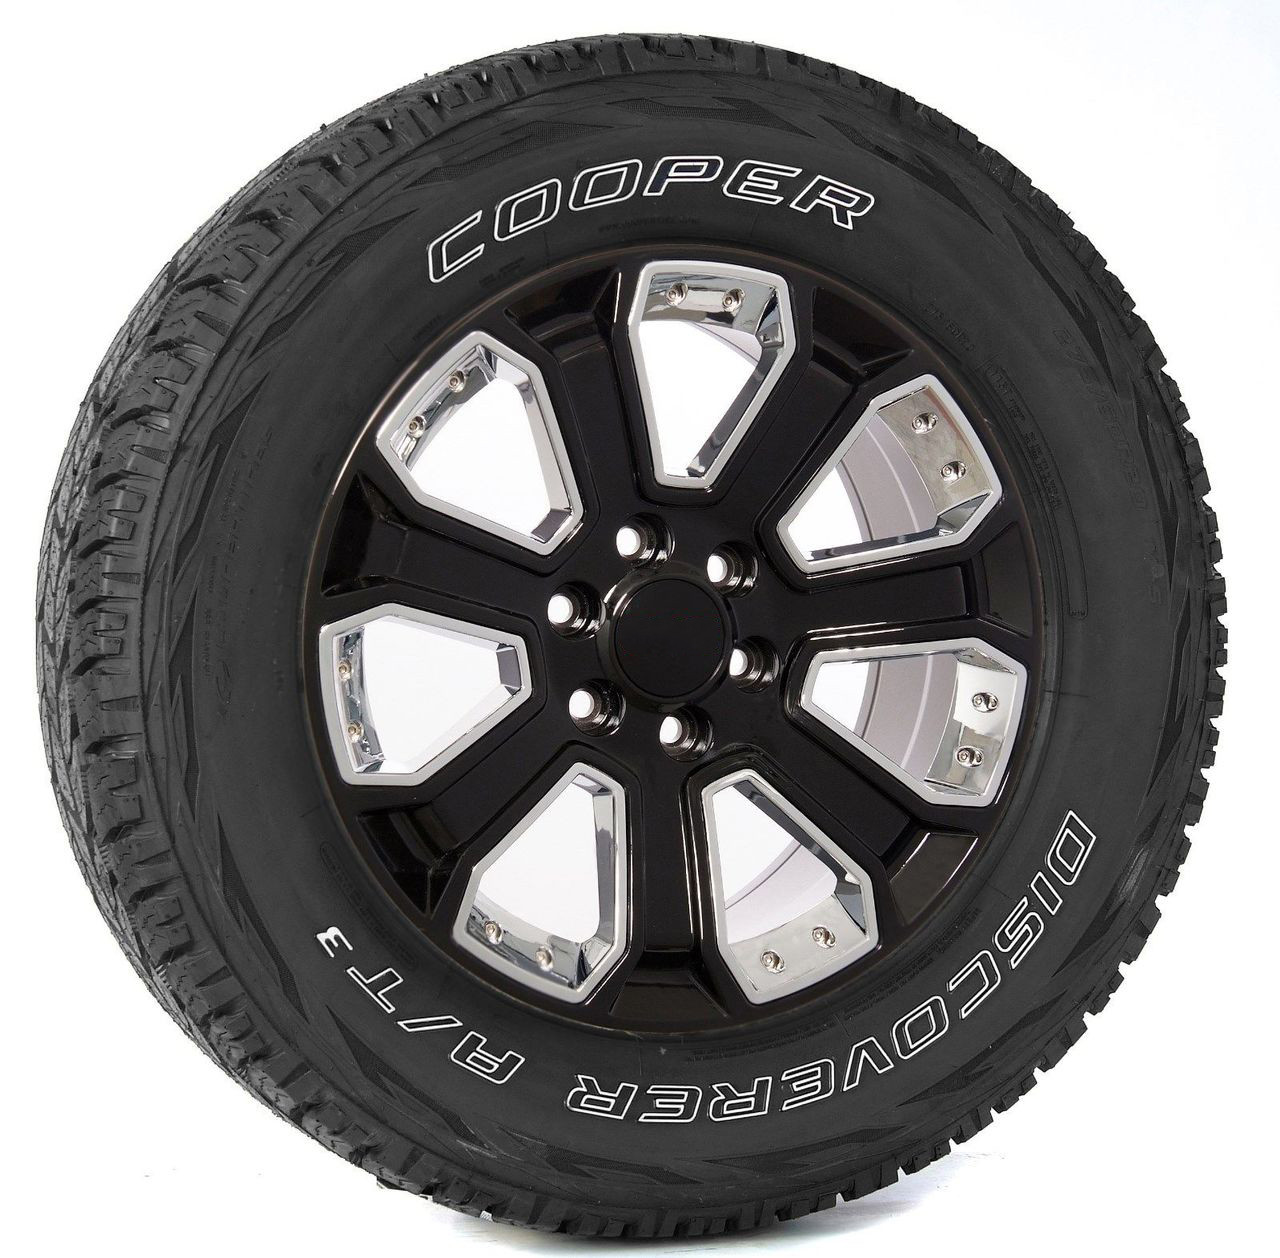 "Gloss Black 20"" With Chrome Inserts Wheels with Cooper Tires for GMC Sierra, Yukon, Denali - New Set of 4"